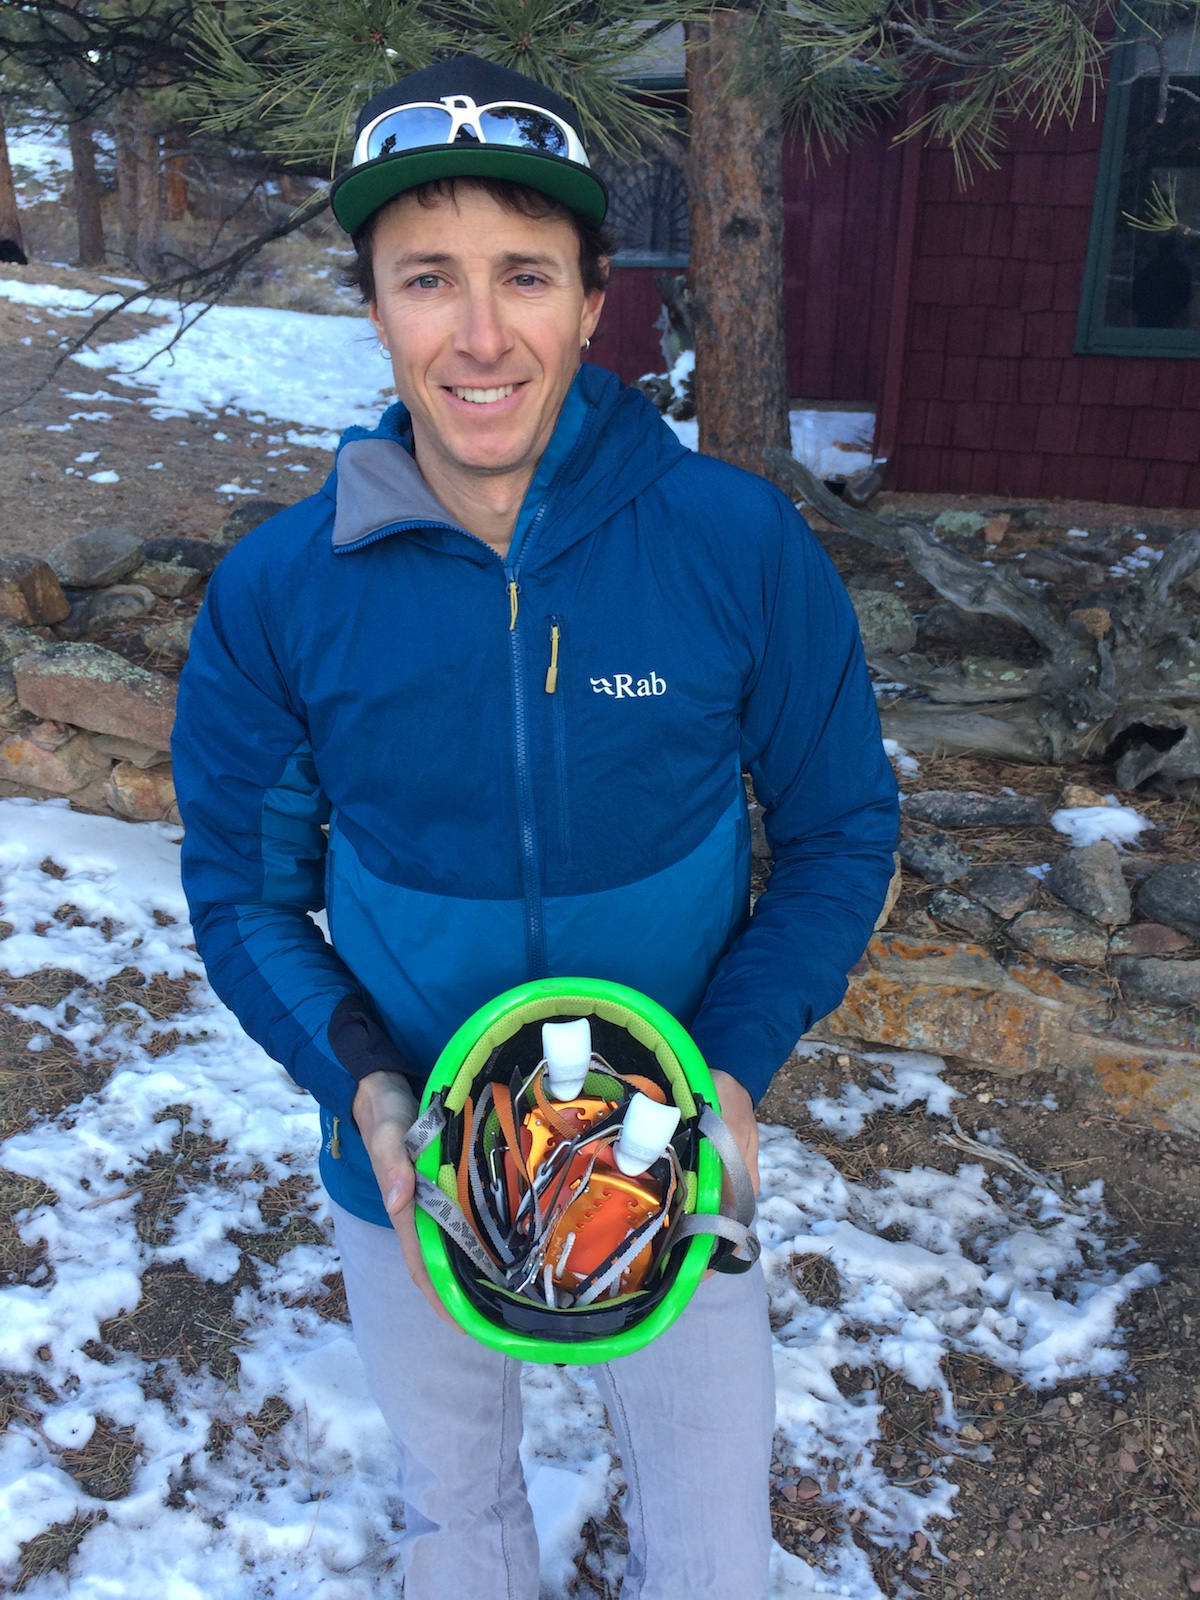 Mike Lewis shows how the Irvis Hybrid Crampons easily fit in a helmet. [Photo] Chris Wood